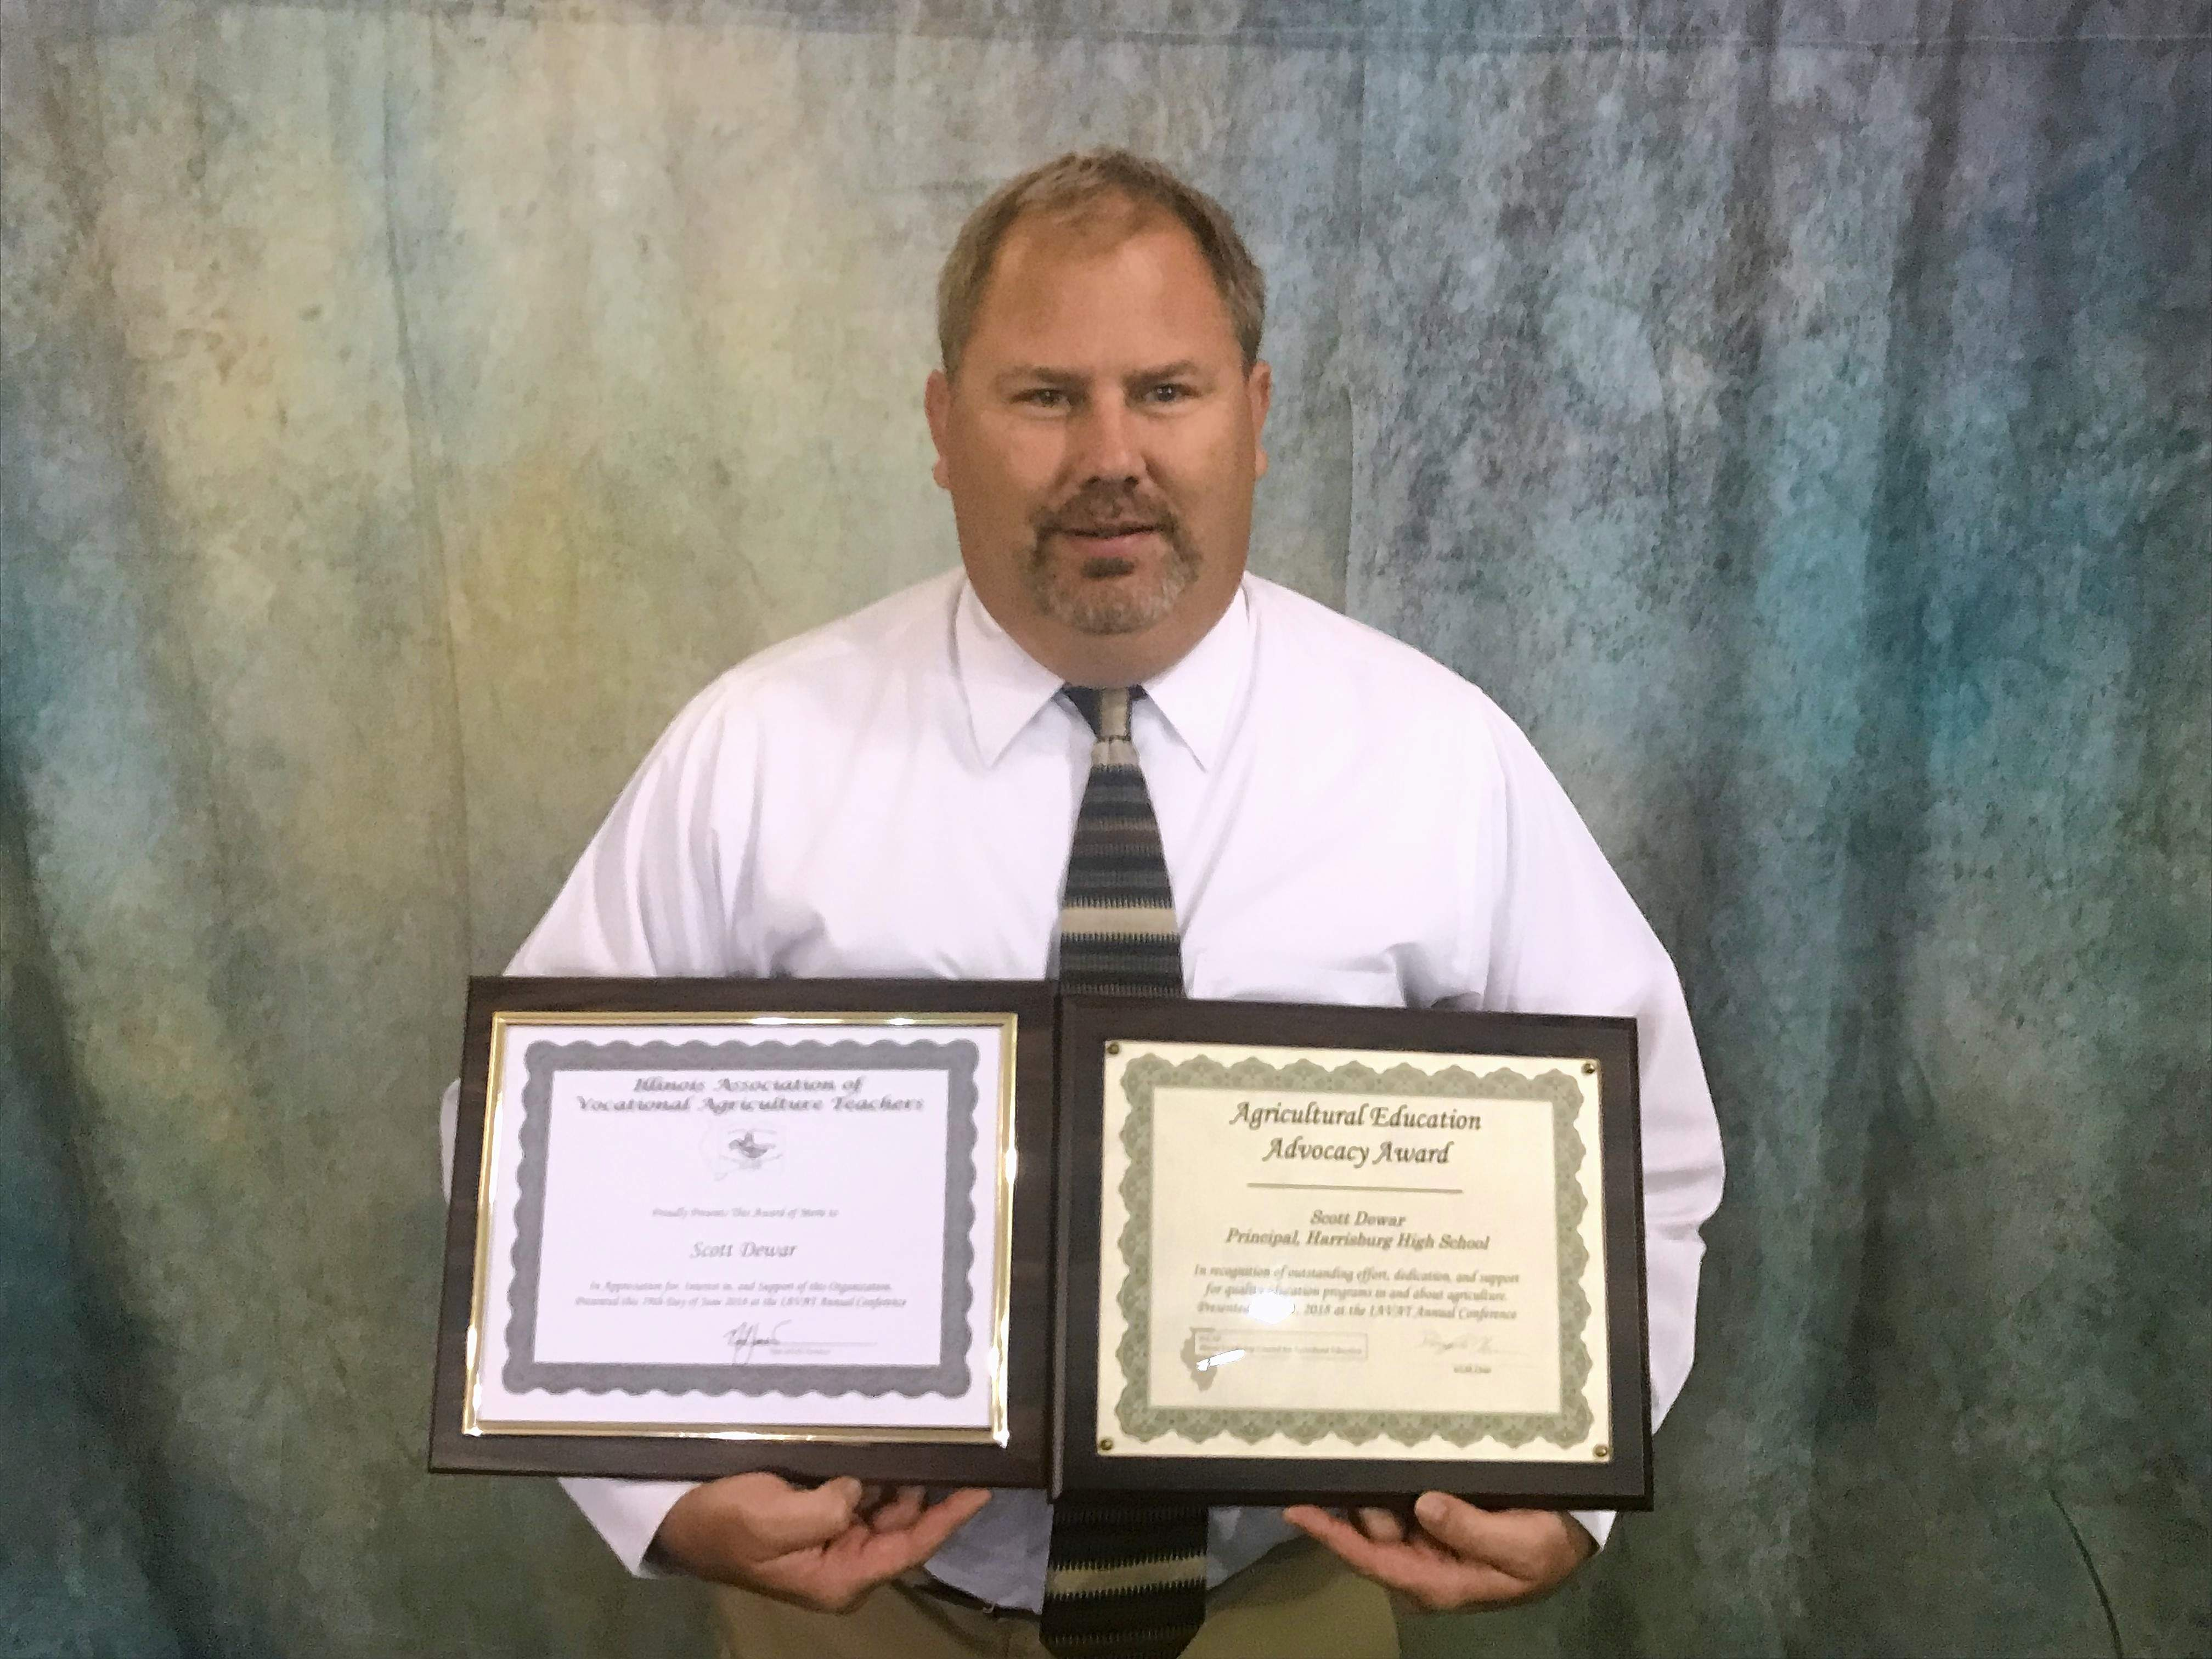 Harrisburg High School Principal Scott Dewar, holding his FFA District V Agriculture Education Advocacy Award certificates. The award recognizes Dewar's extensive support of the HHS FFA program.